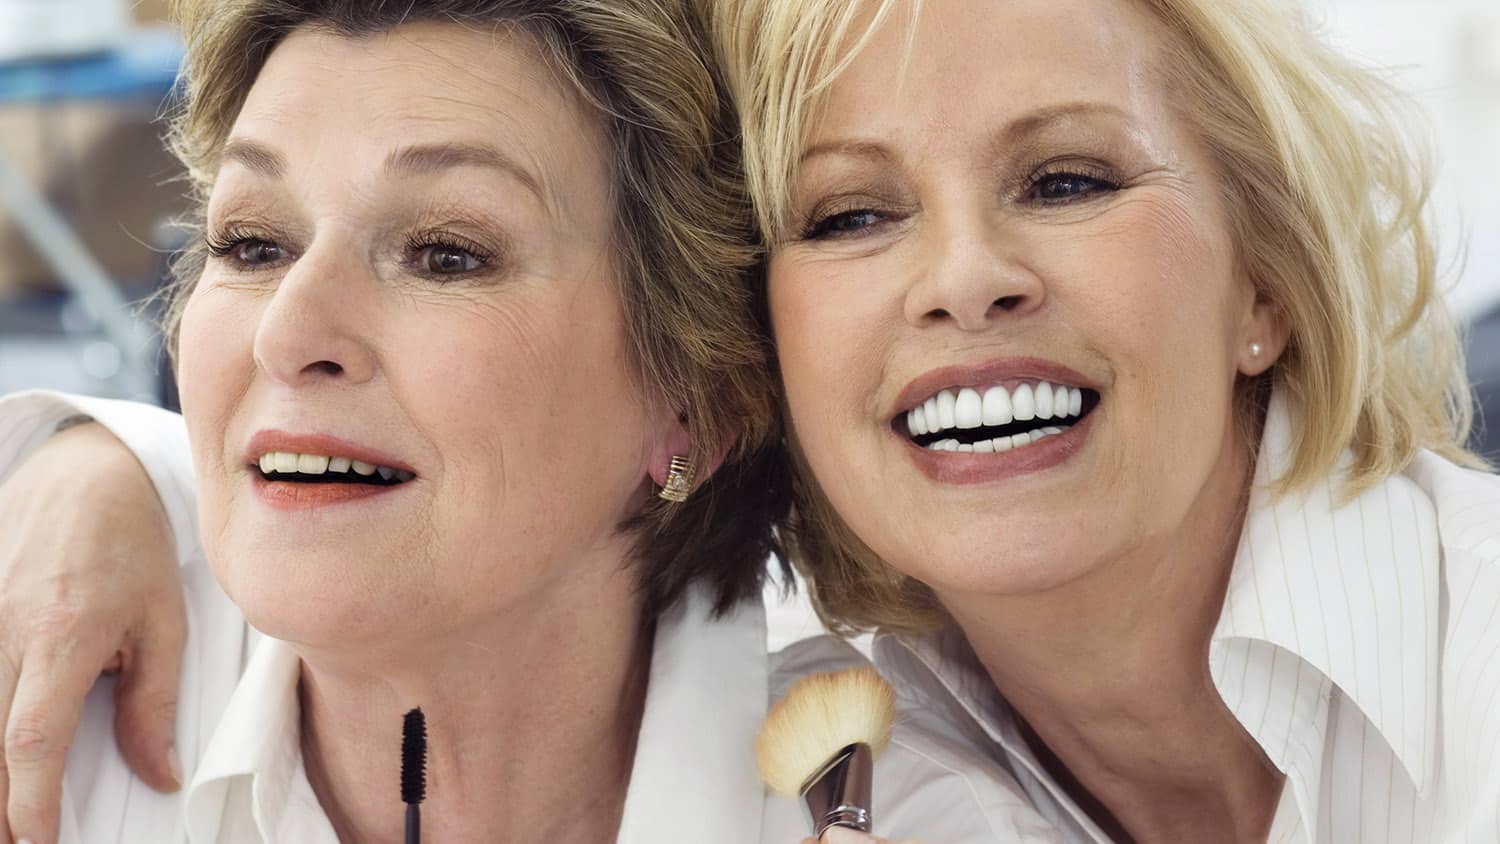 12 Exclusive Makeup Tips for Older Women from a Professional